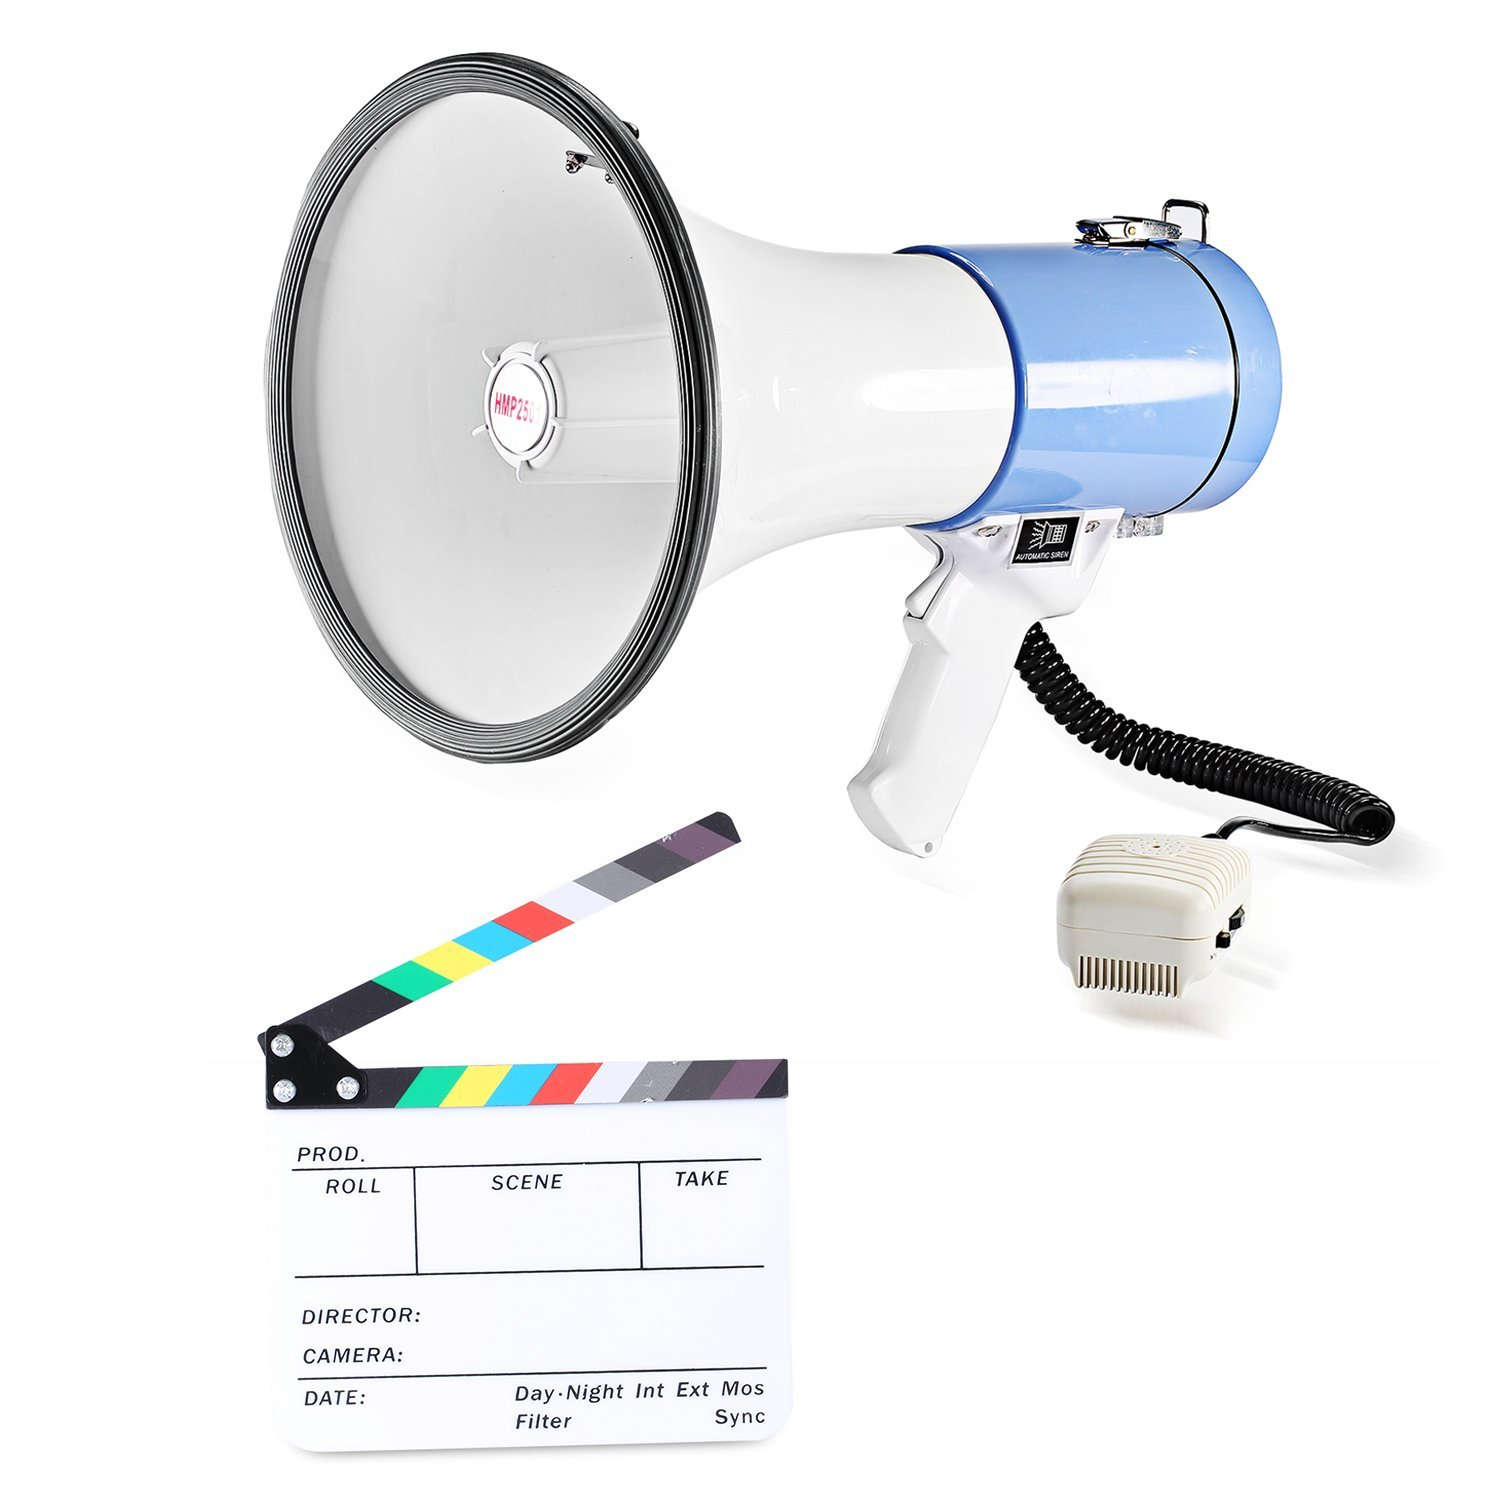 """Neewer® Film Clapboard & Megaphone Kit: (1)10x8""""/25x20cm Dry Erase Acrylic Clapboard with Color Sticks + (1)50W Megaphone with Detachable Microphone, Talk/Siren/Record Audio Mode and Audio Memory"""